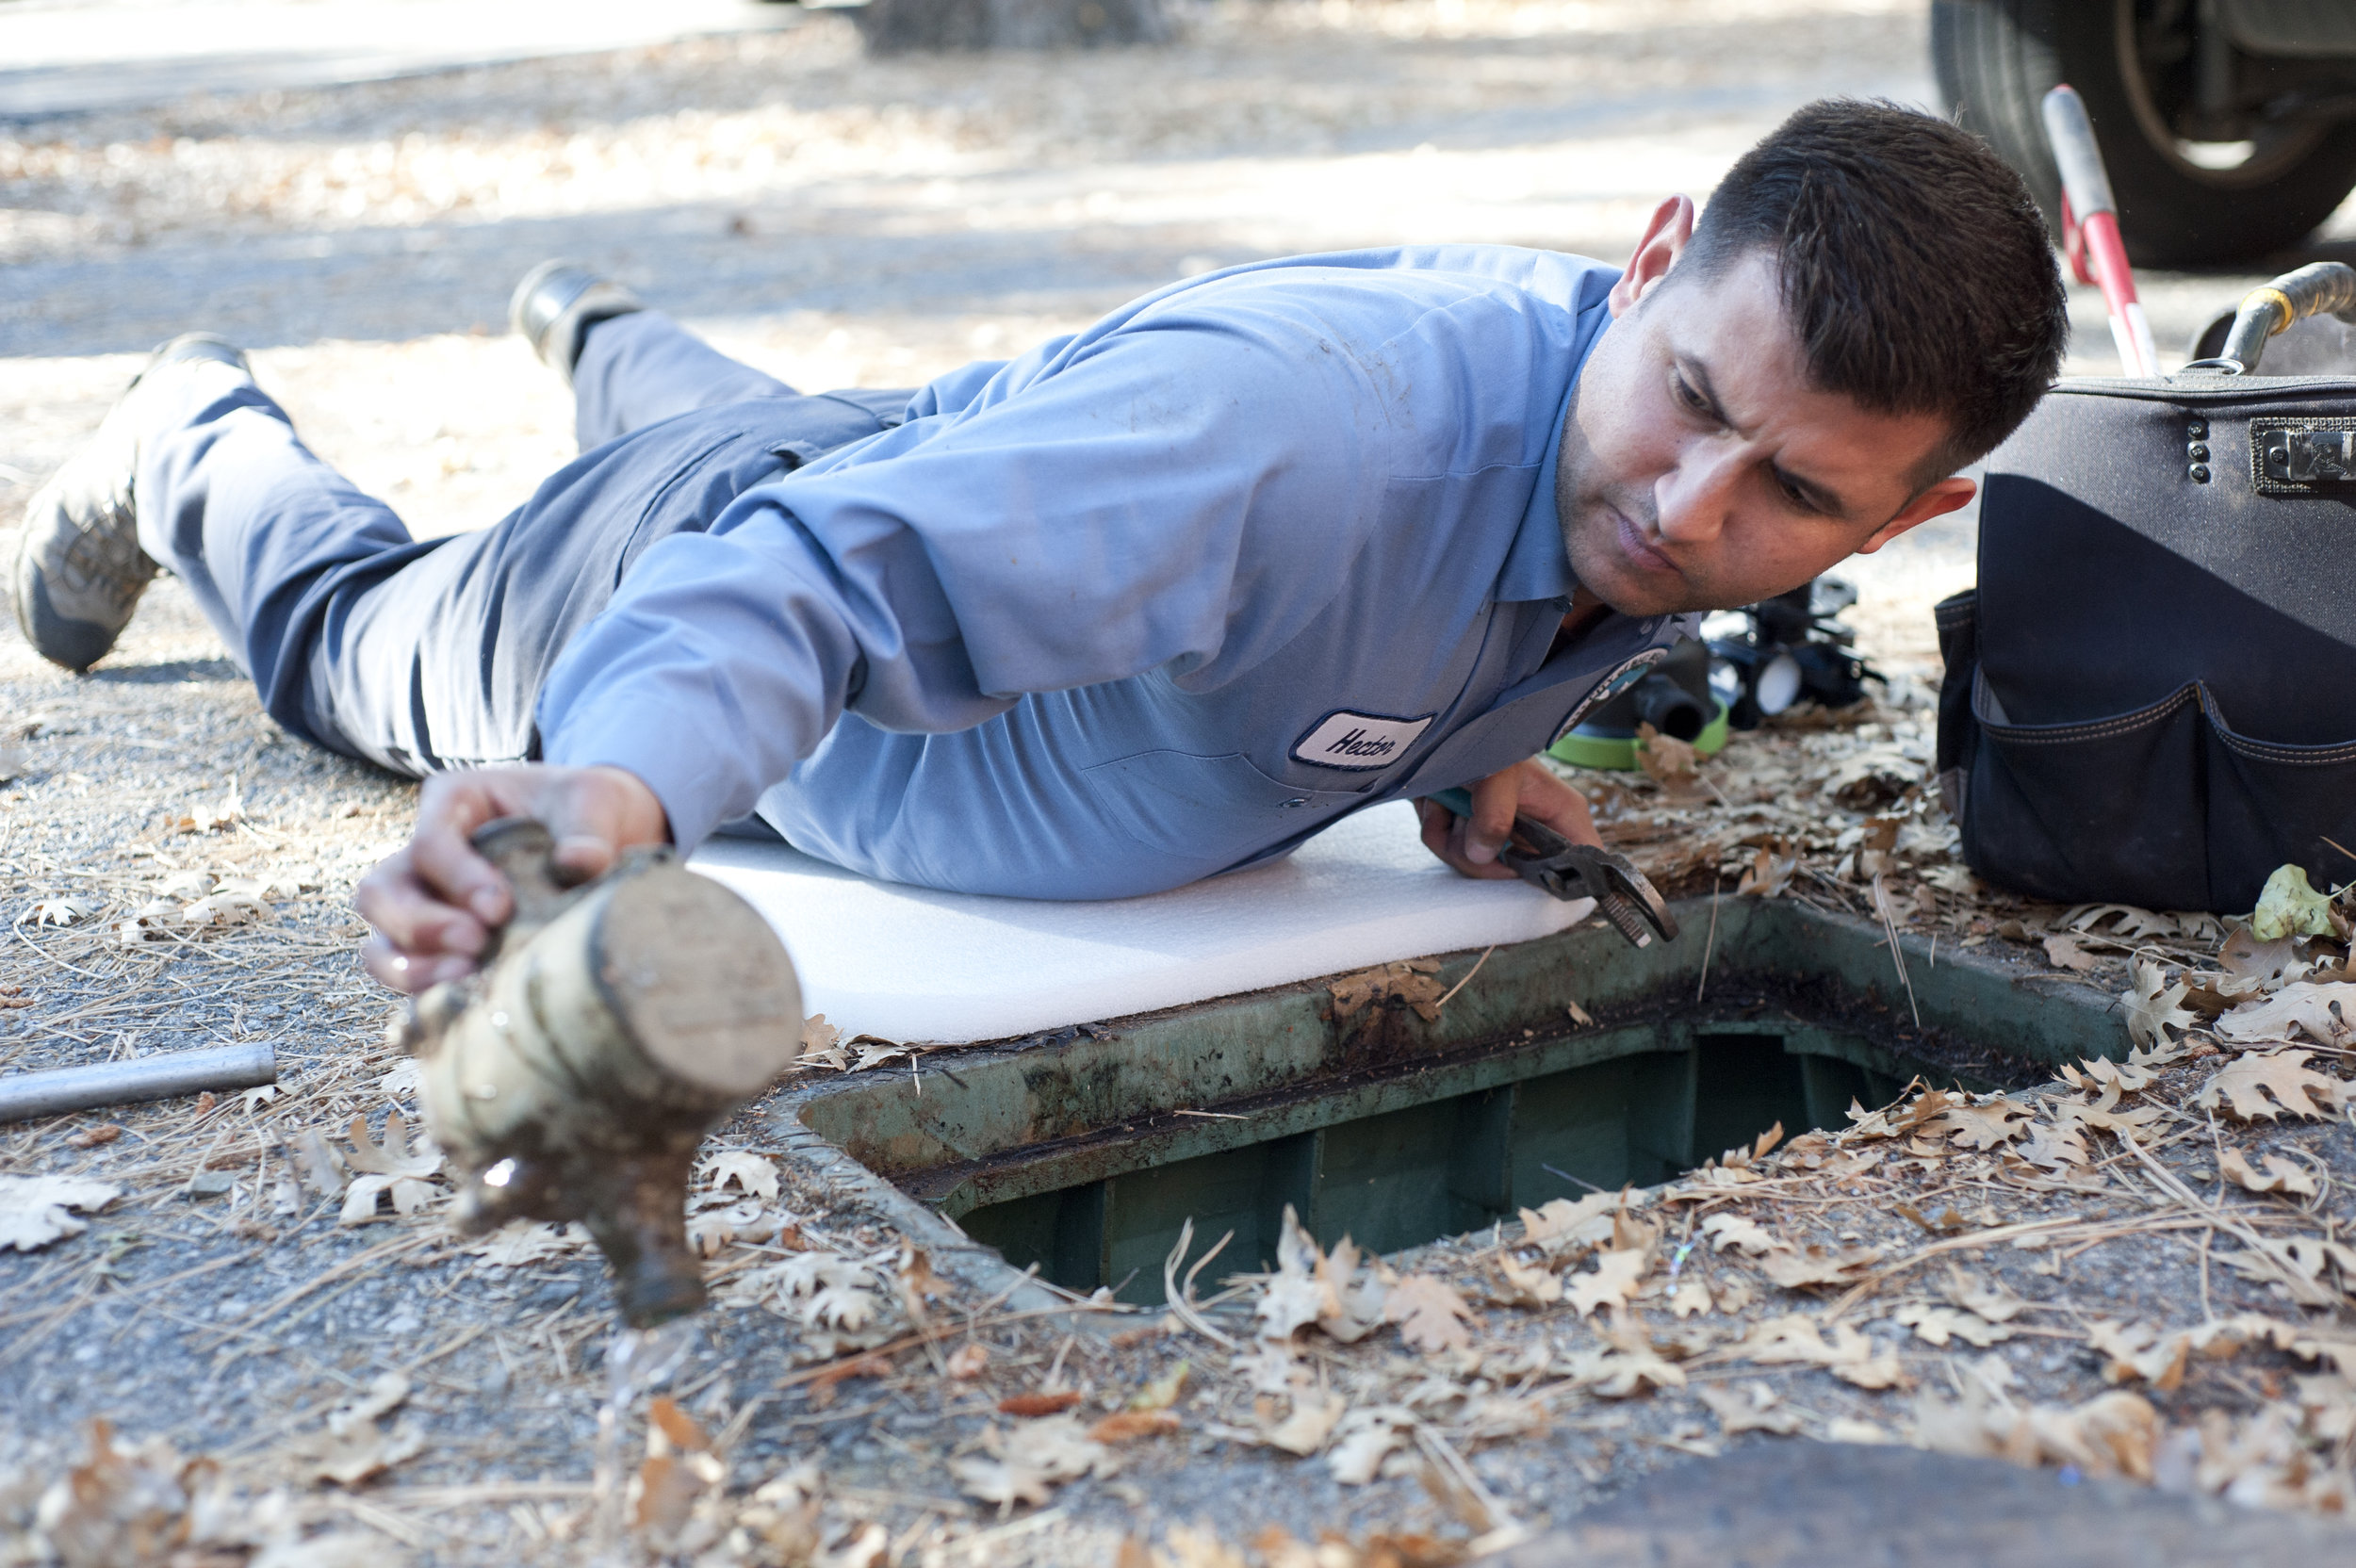 Hector Pedroza, meter technician for the Big Bear Lake DWP, removes the old meter from a residence in Sugarloaf Nov. 3, 2016. The DWP hit the halfway point in the water meter replacement program in 2016.